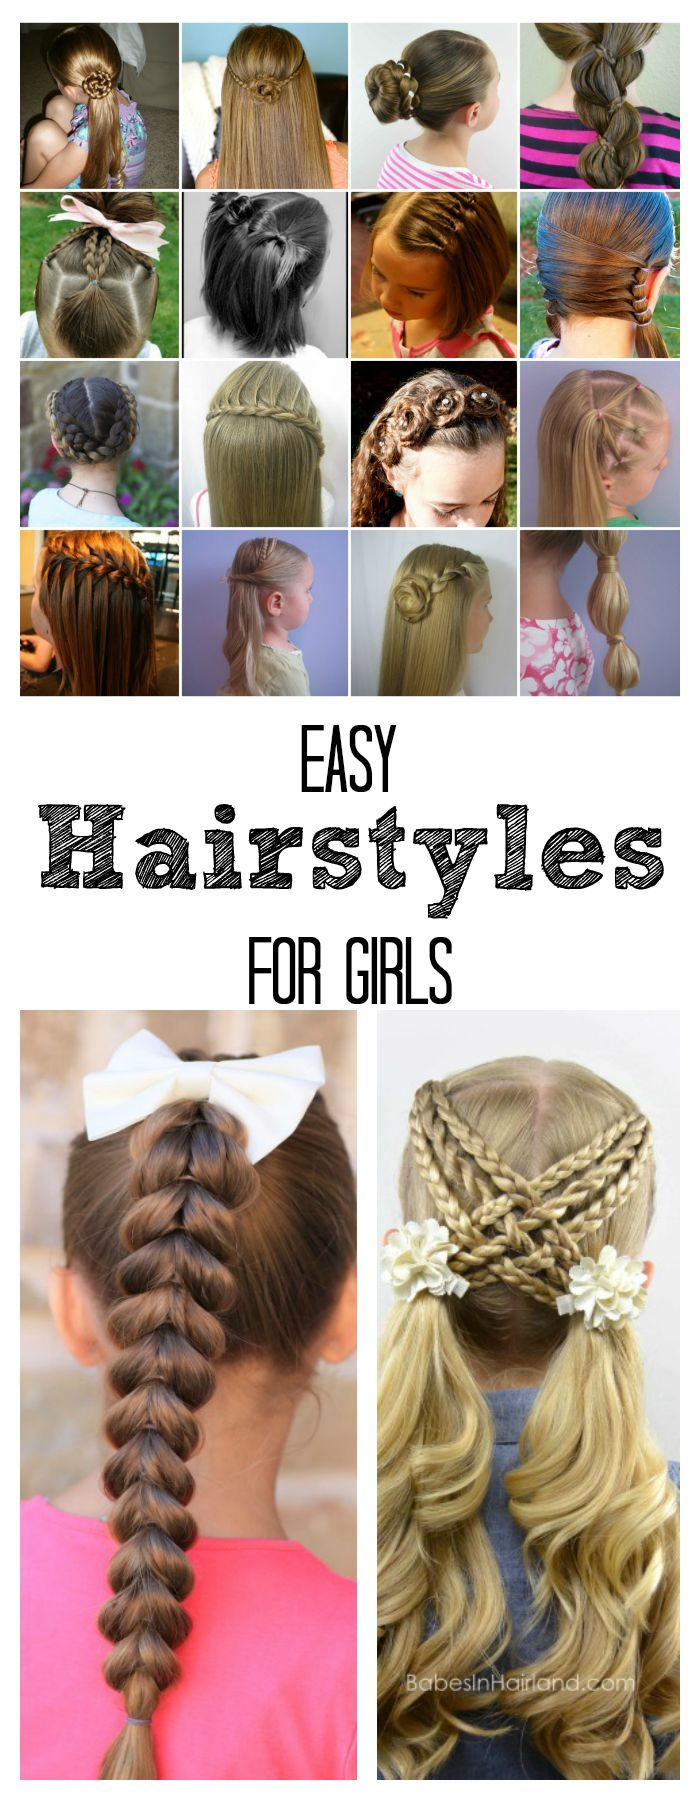 25+ best hair for kids ideas on pinterest | hairstyles for kids